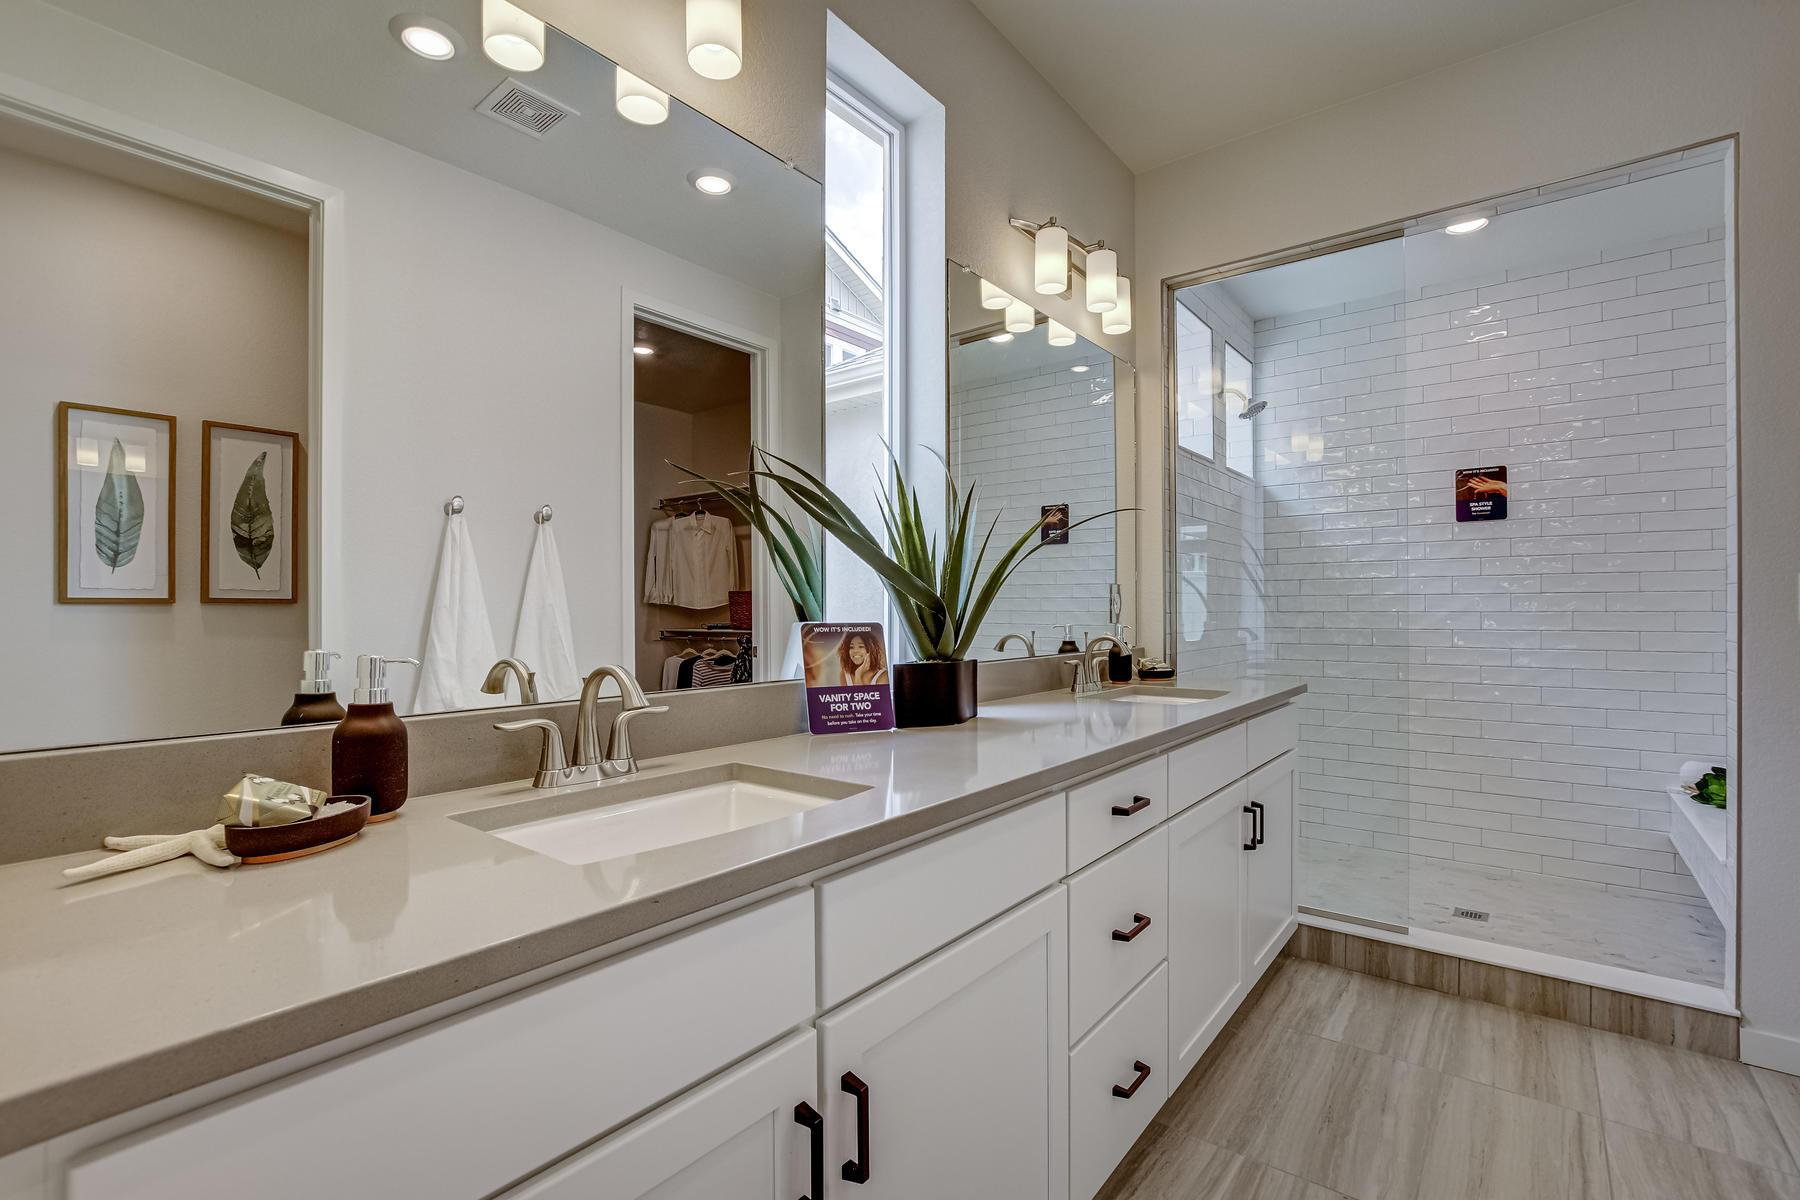 Bathroom featured in the Crestone By Oakwood Homes in Fort Collins-Loveland, CO